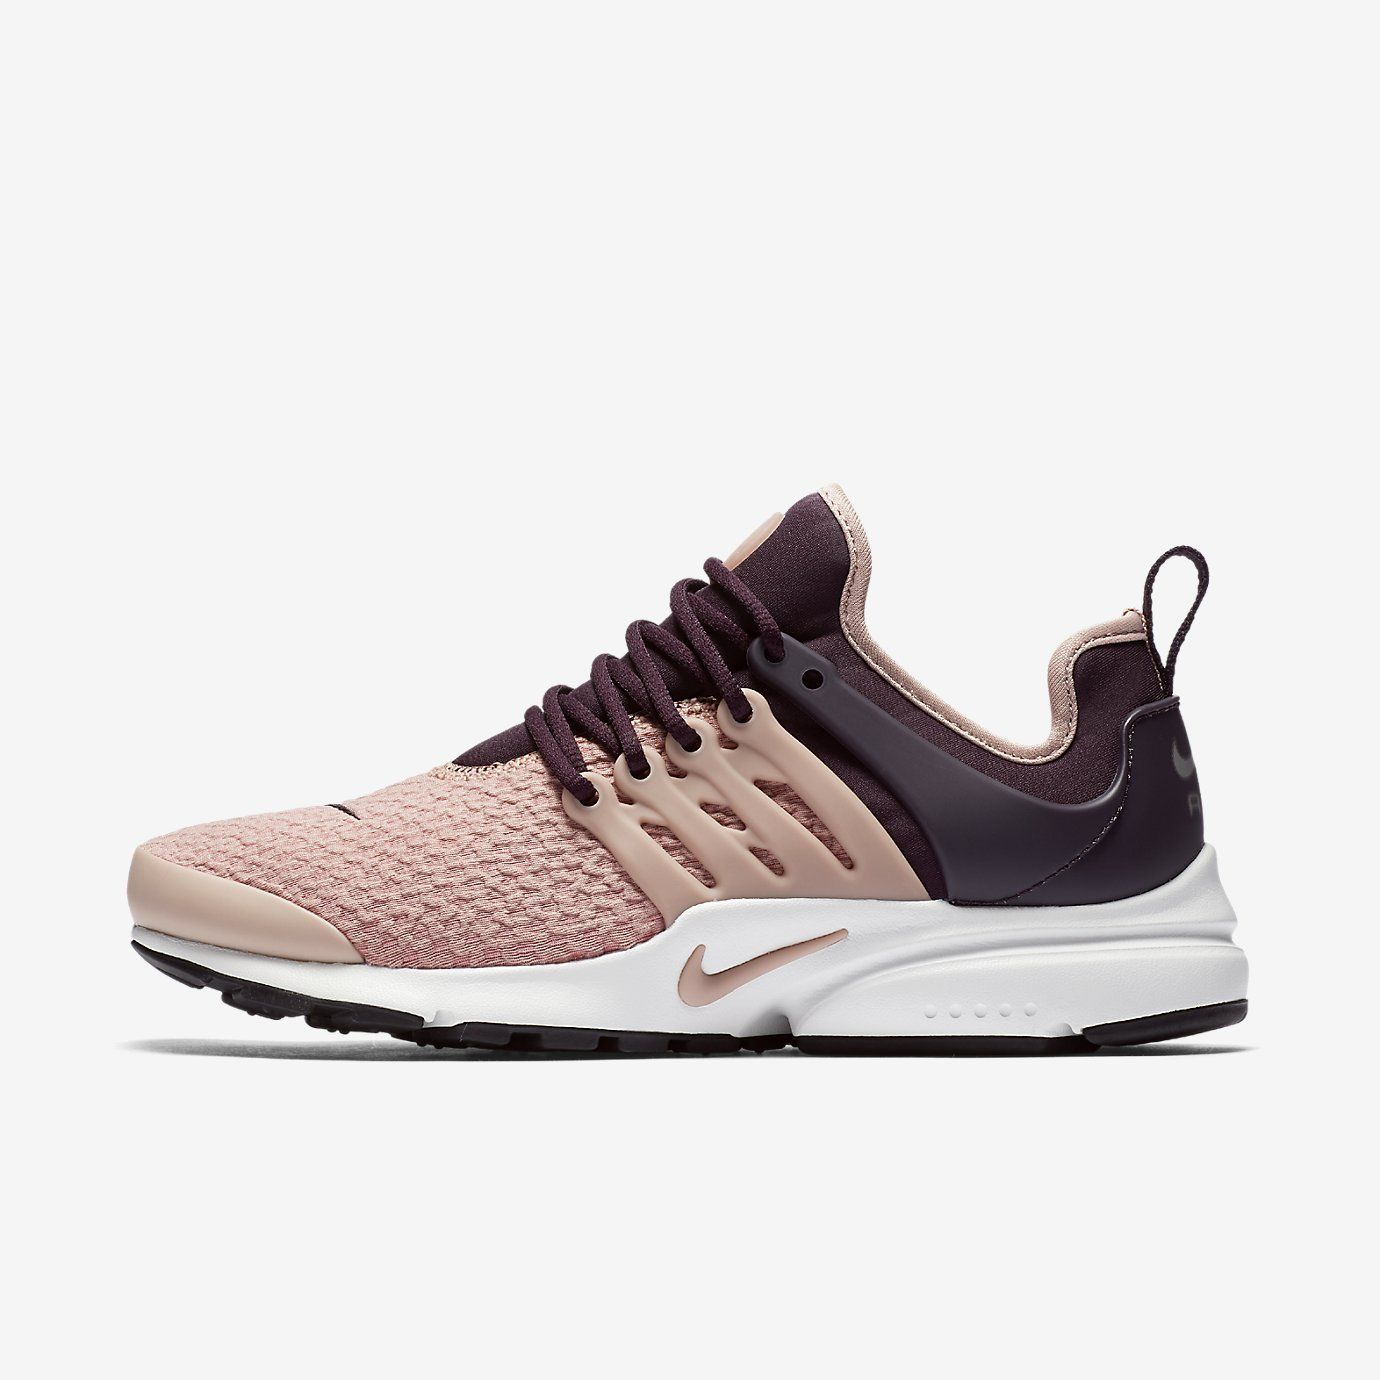 buy popular f68cc 6889e Nike Air Presto- port winesummit whiteblackparticle pink